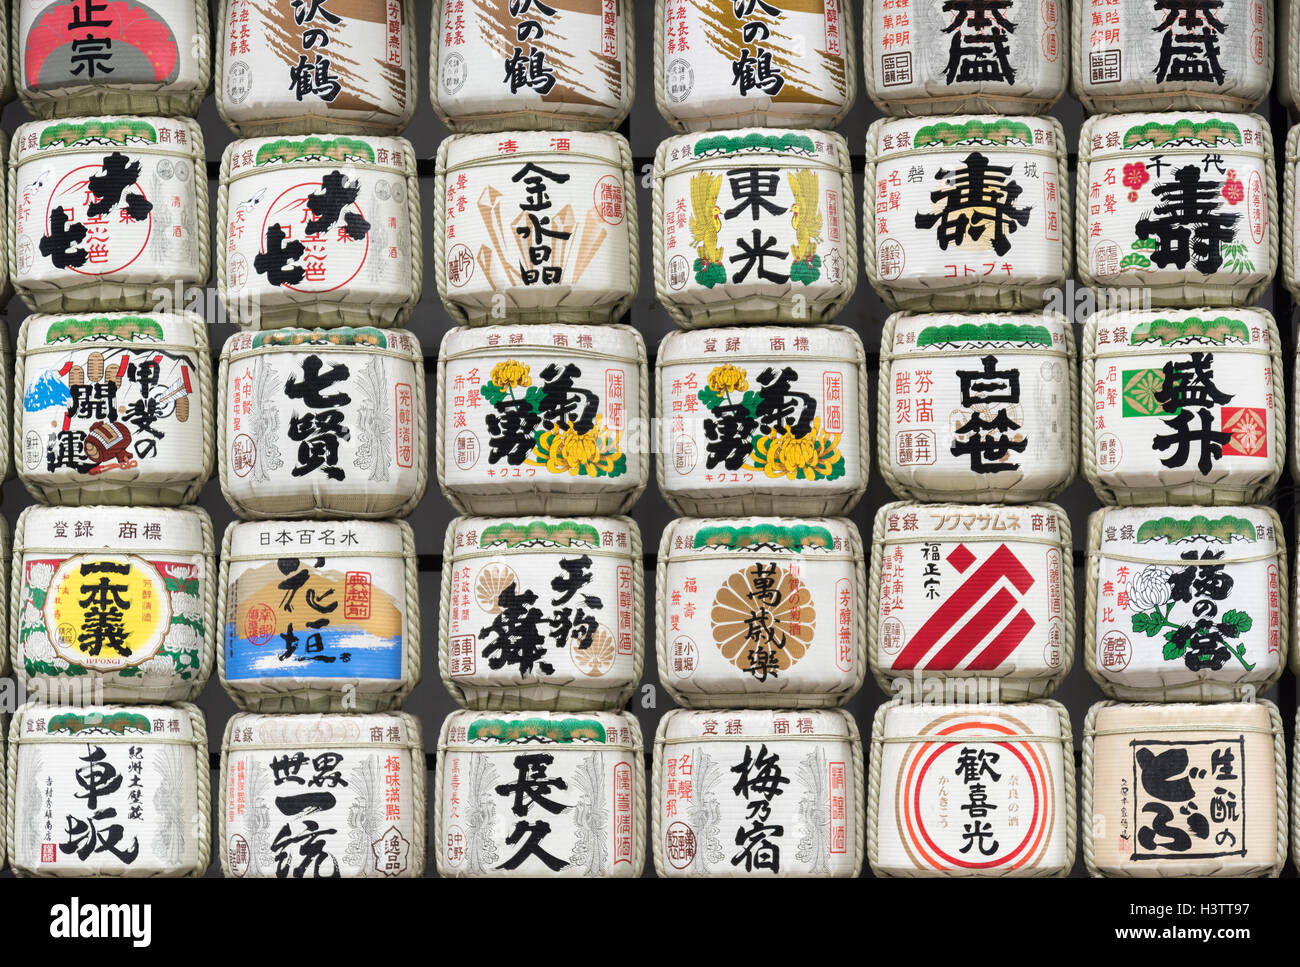 Sake Barrels at Meiji Jingu Shrine, Tokyo, Japan Stock Photo